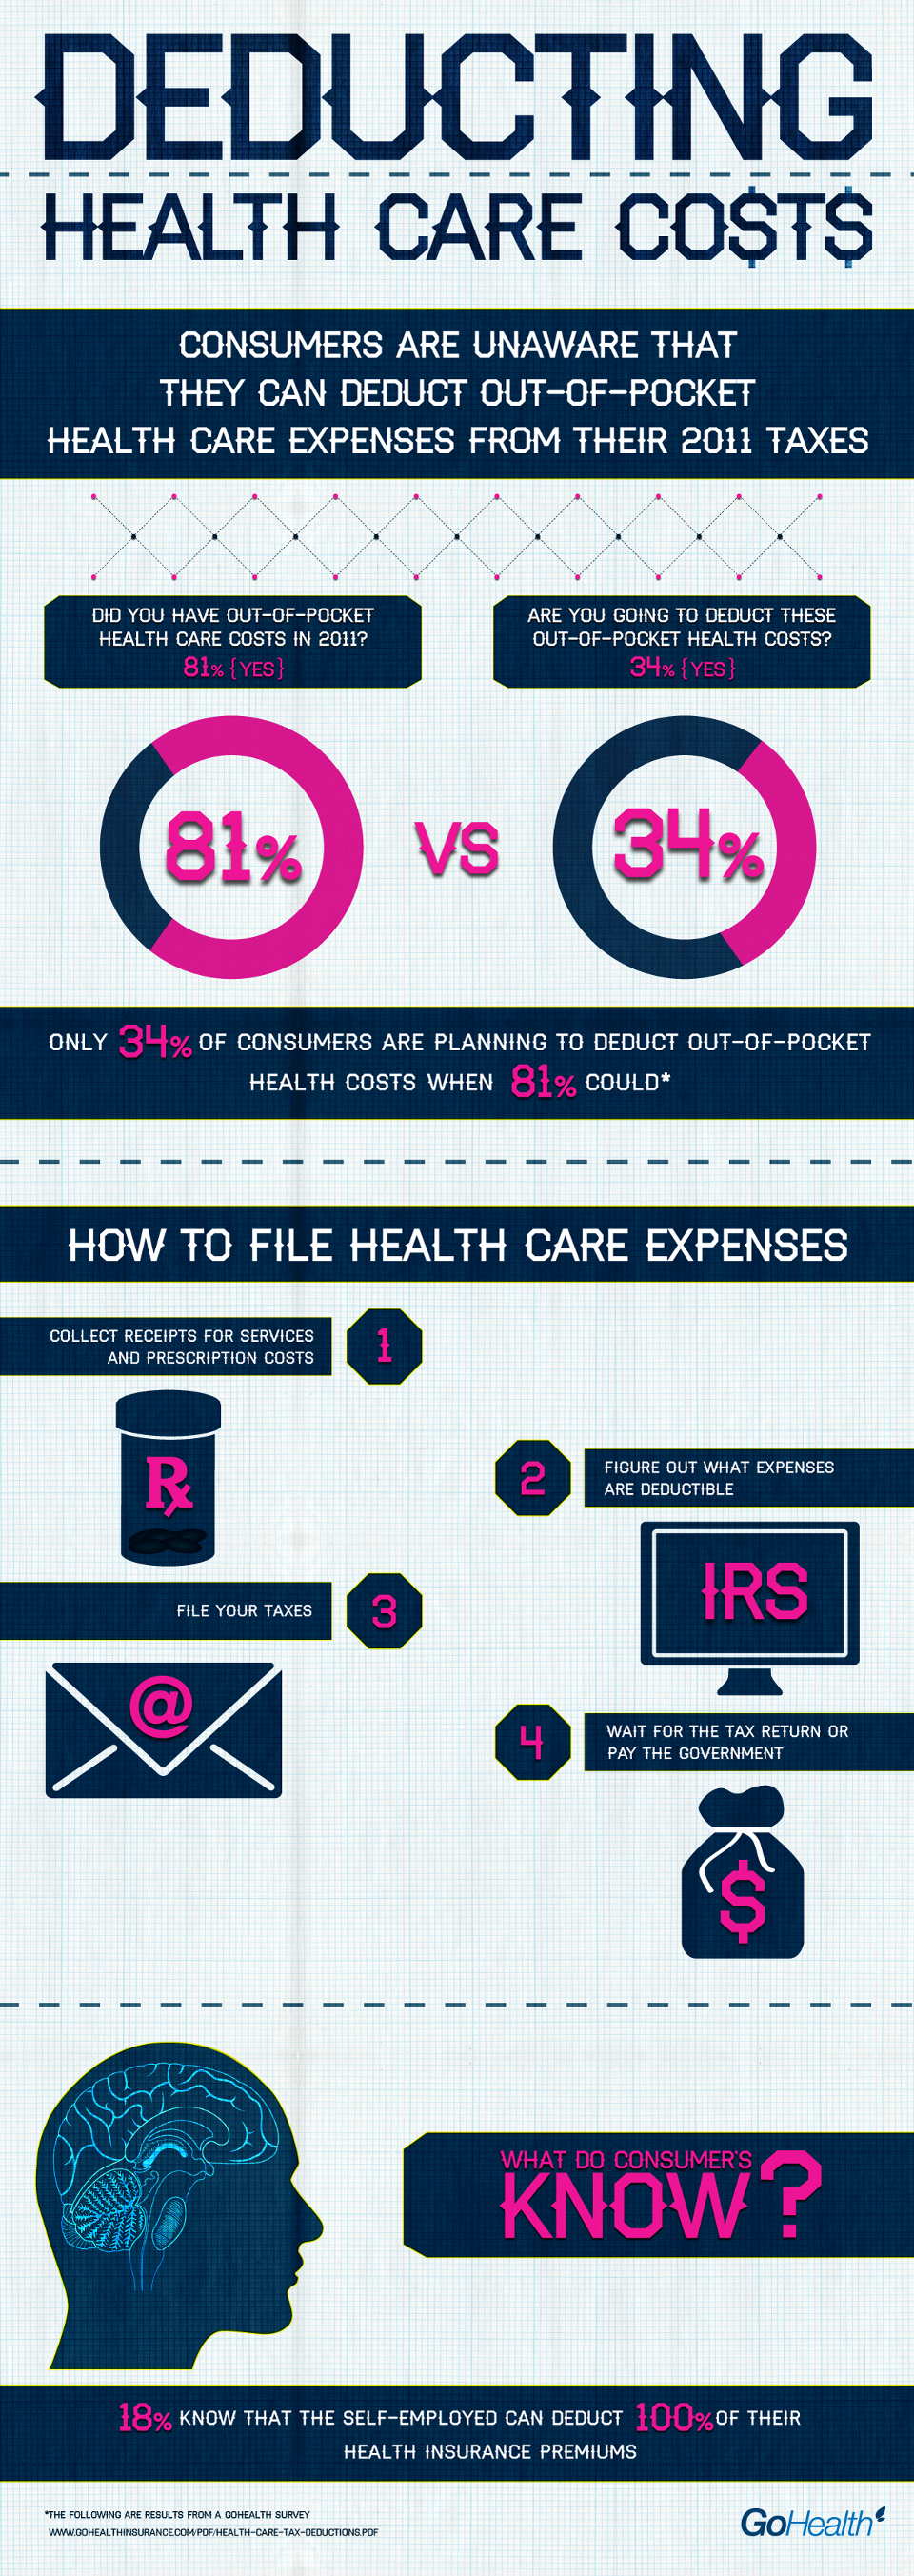 Deducting health care costs